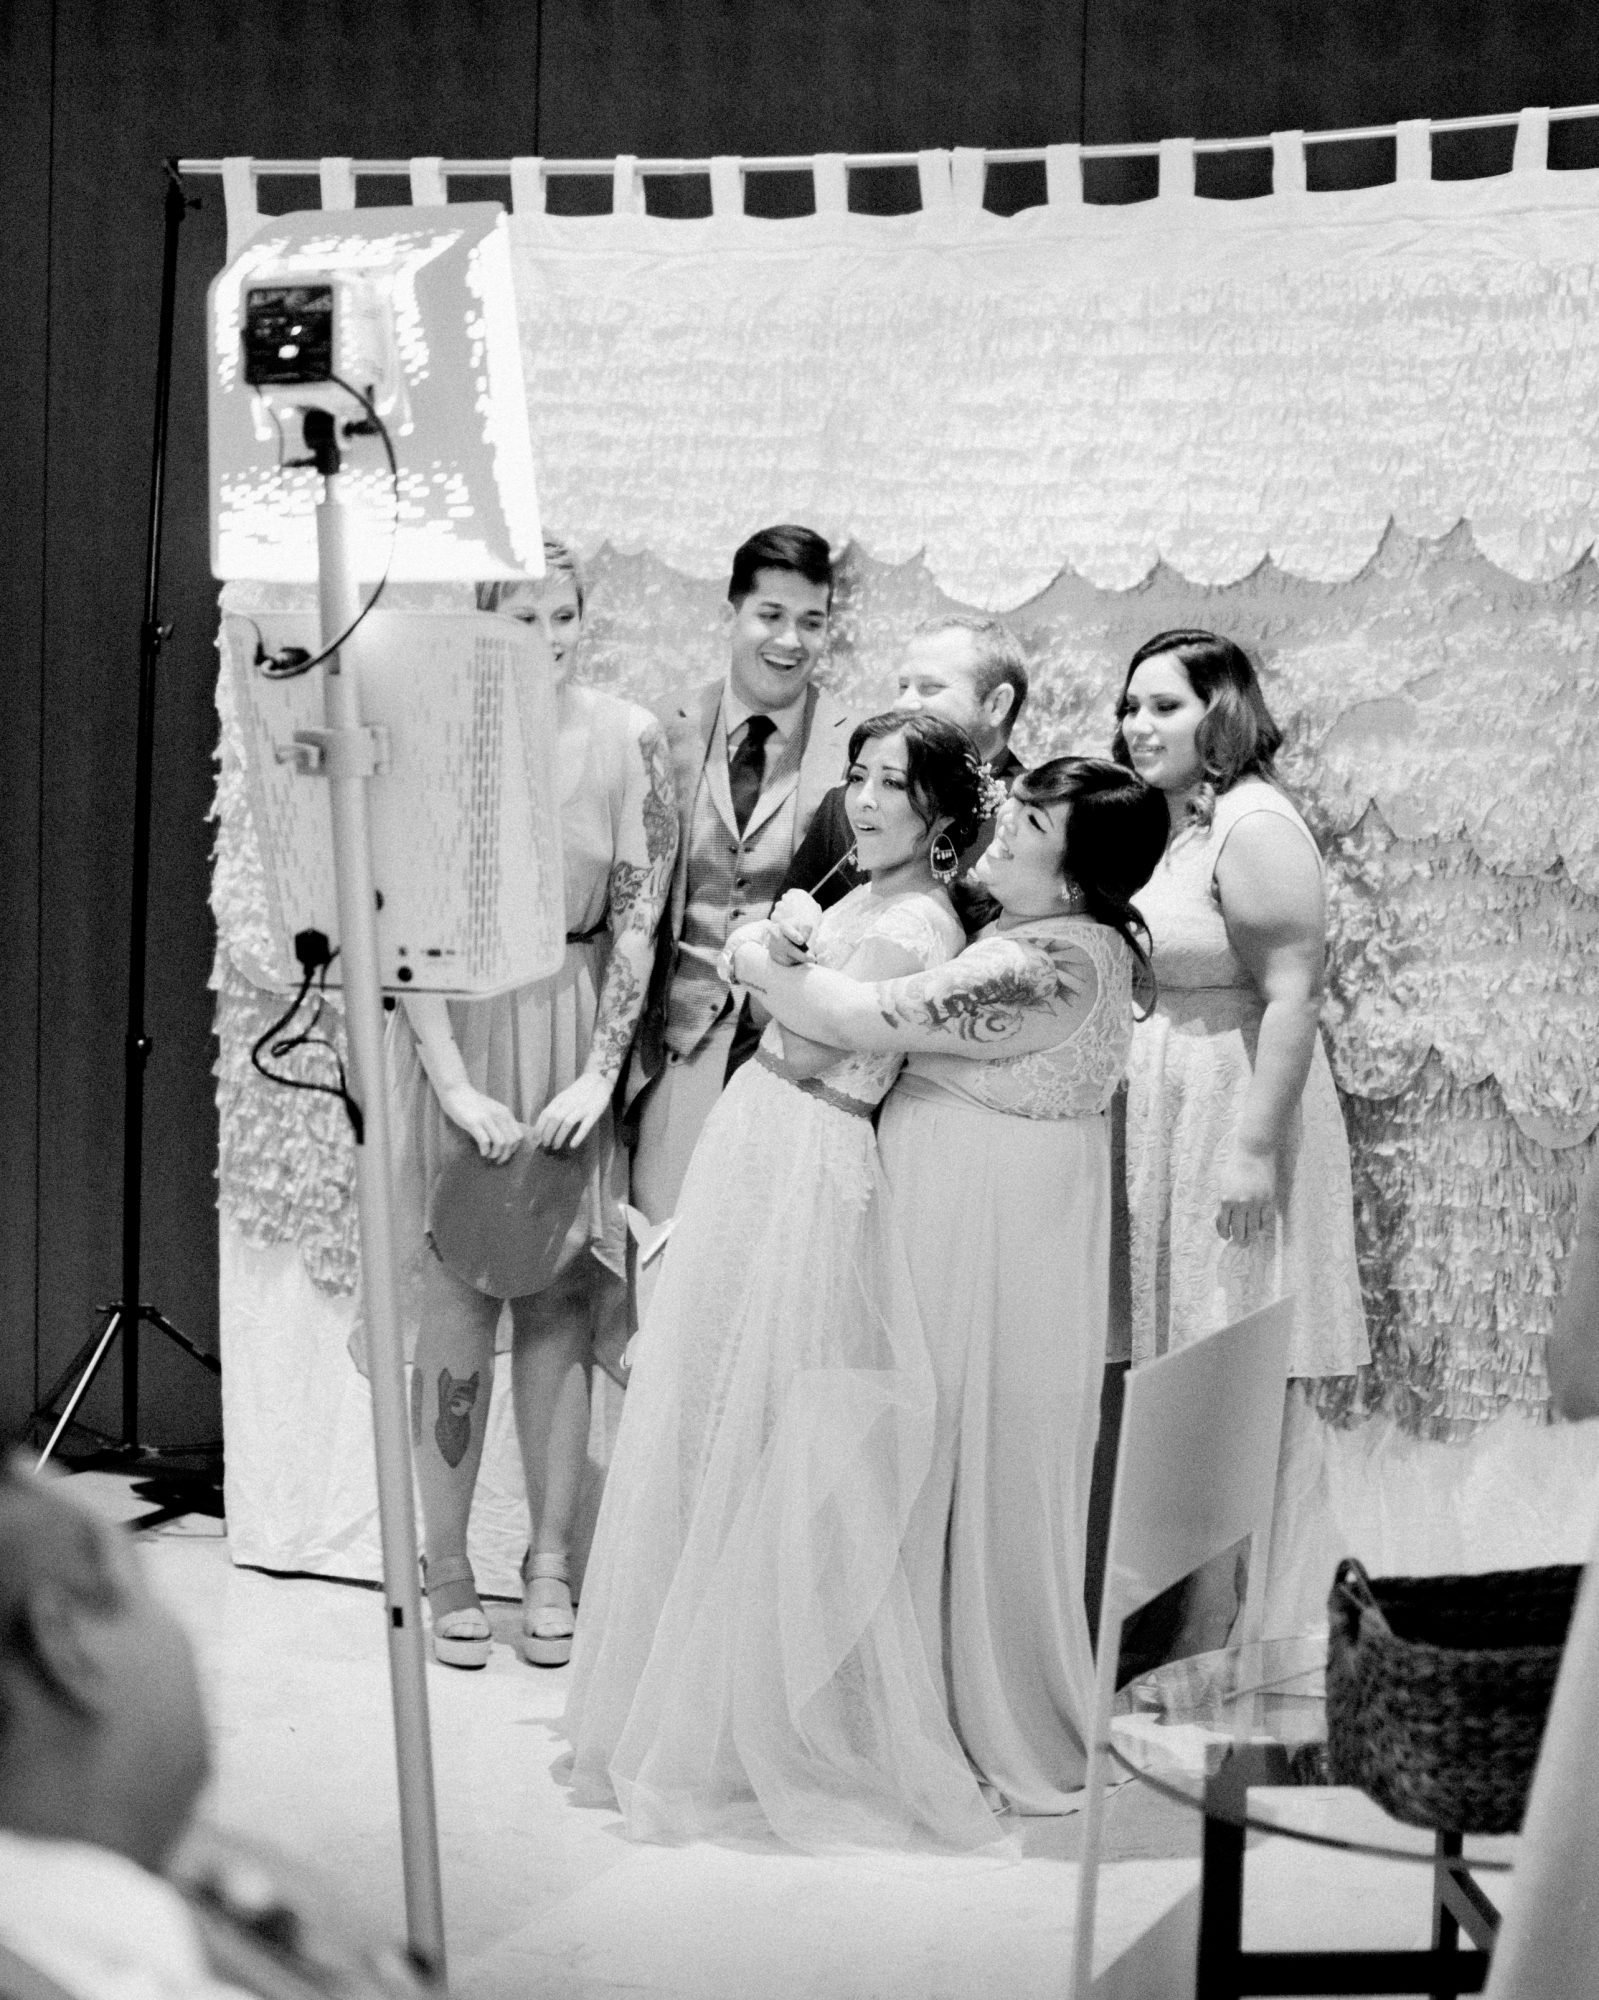 atalia-raul-wedding-photobooth-73-s112395-1215.jpg